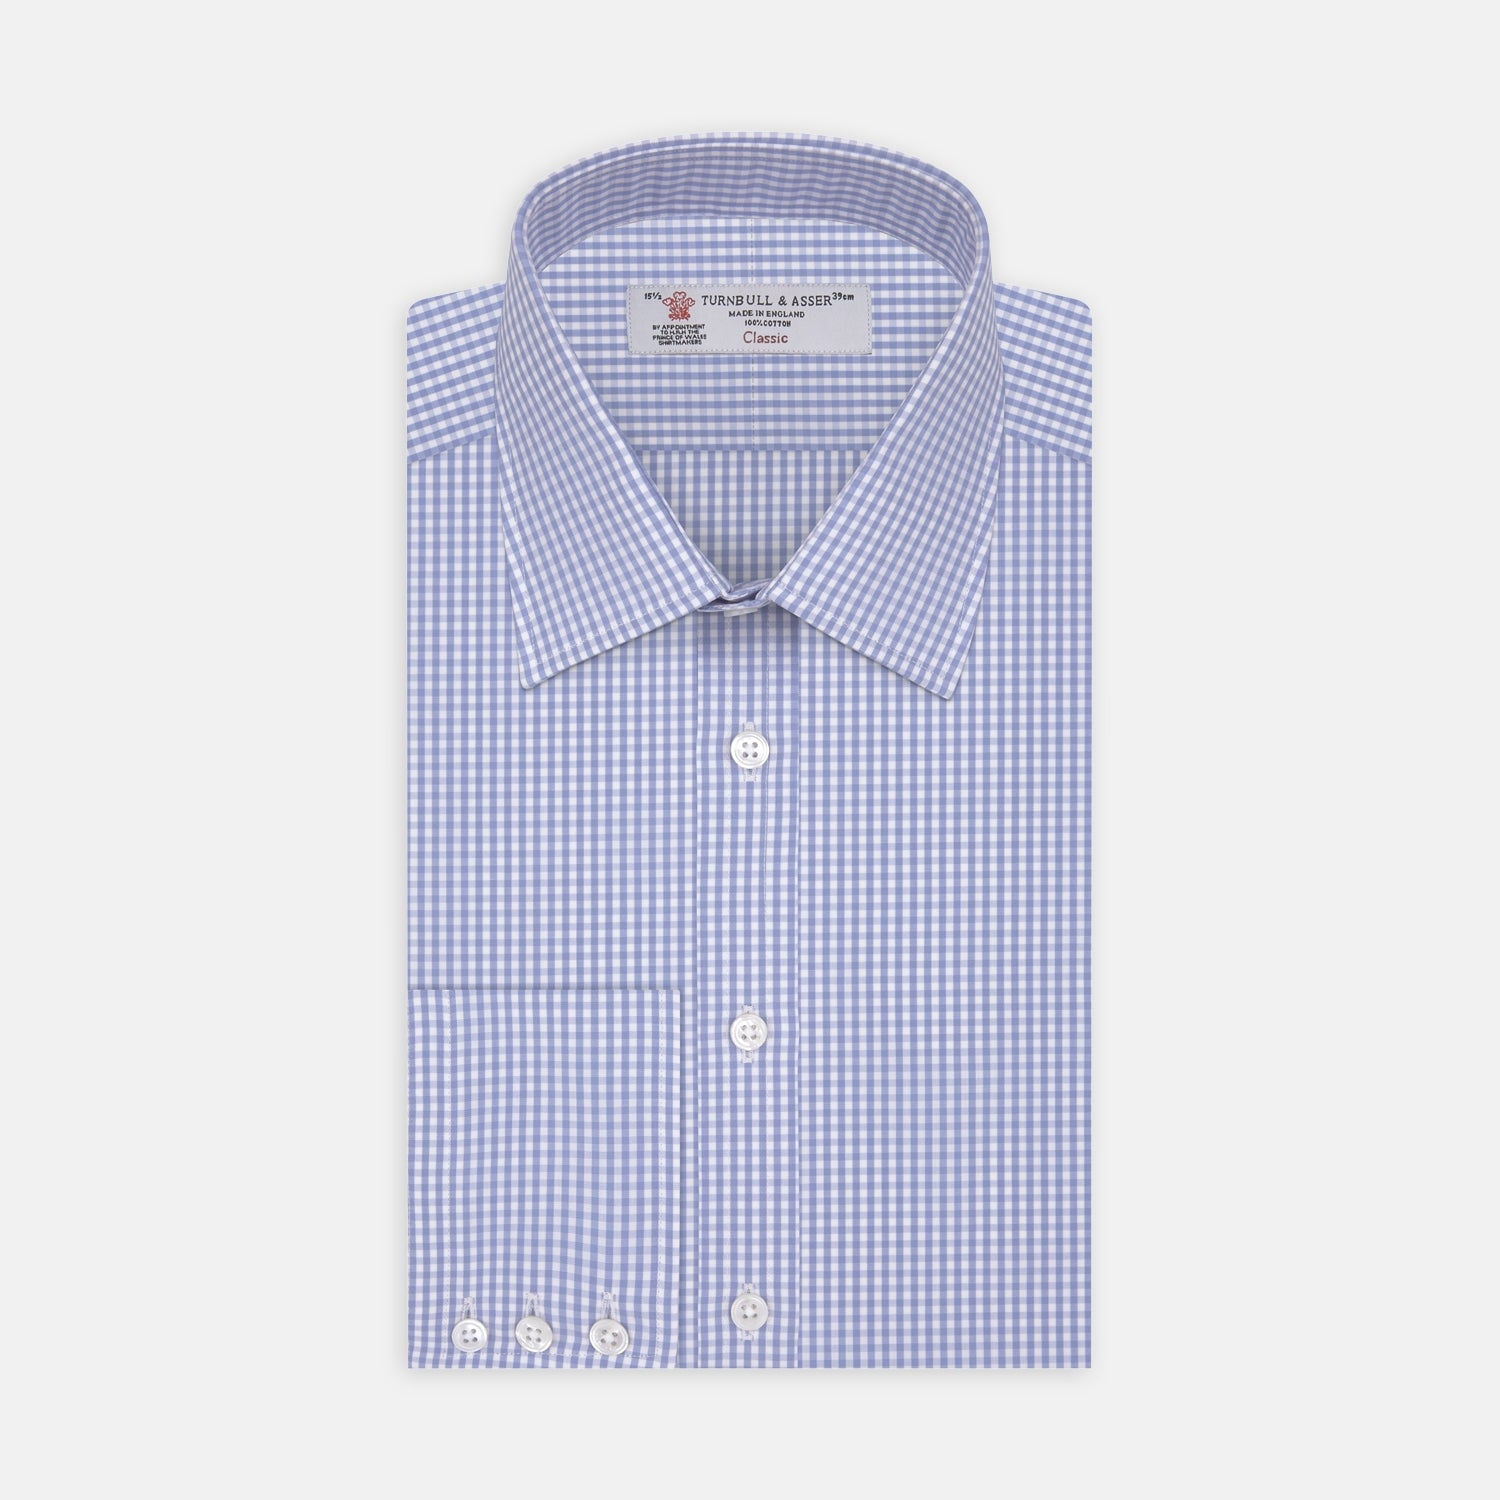 Light Blue Gingham Check Shirt with T&A Collar and 3-Button Cuffs - 14.5 from Turnbull & Asser